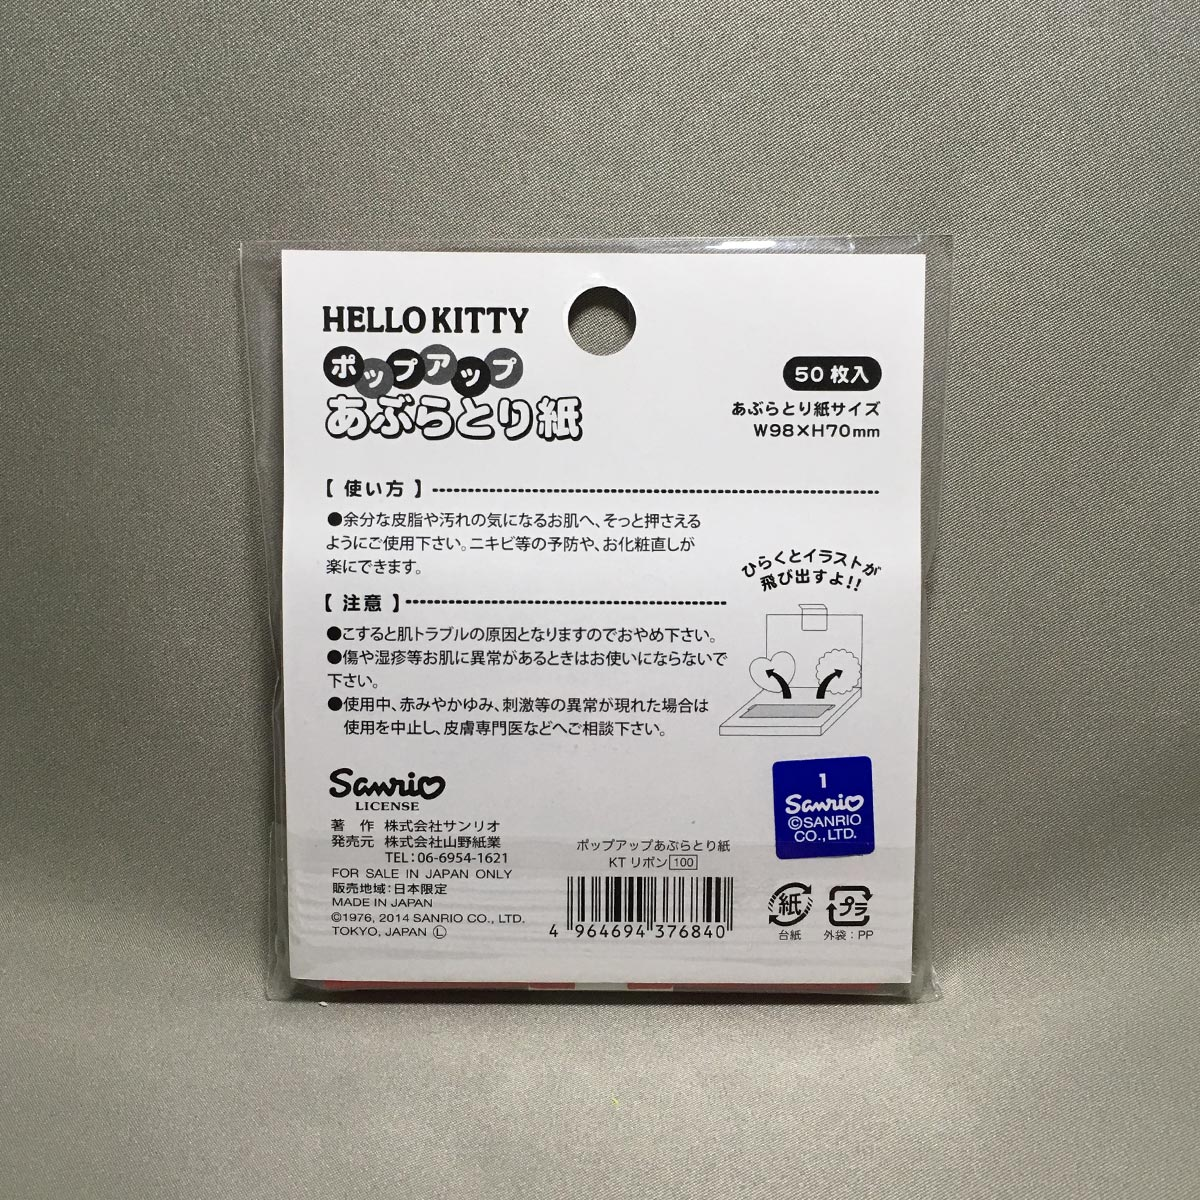 Hello Kitty Oil Blotting Paper - Back packaging view